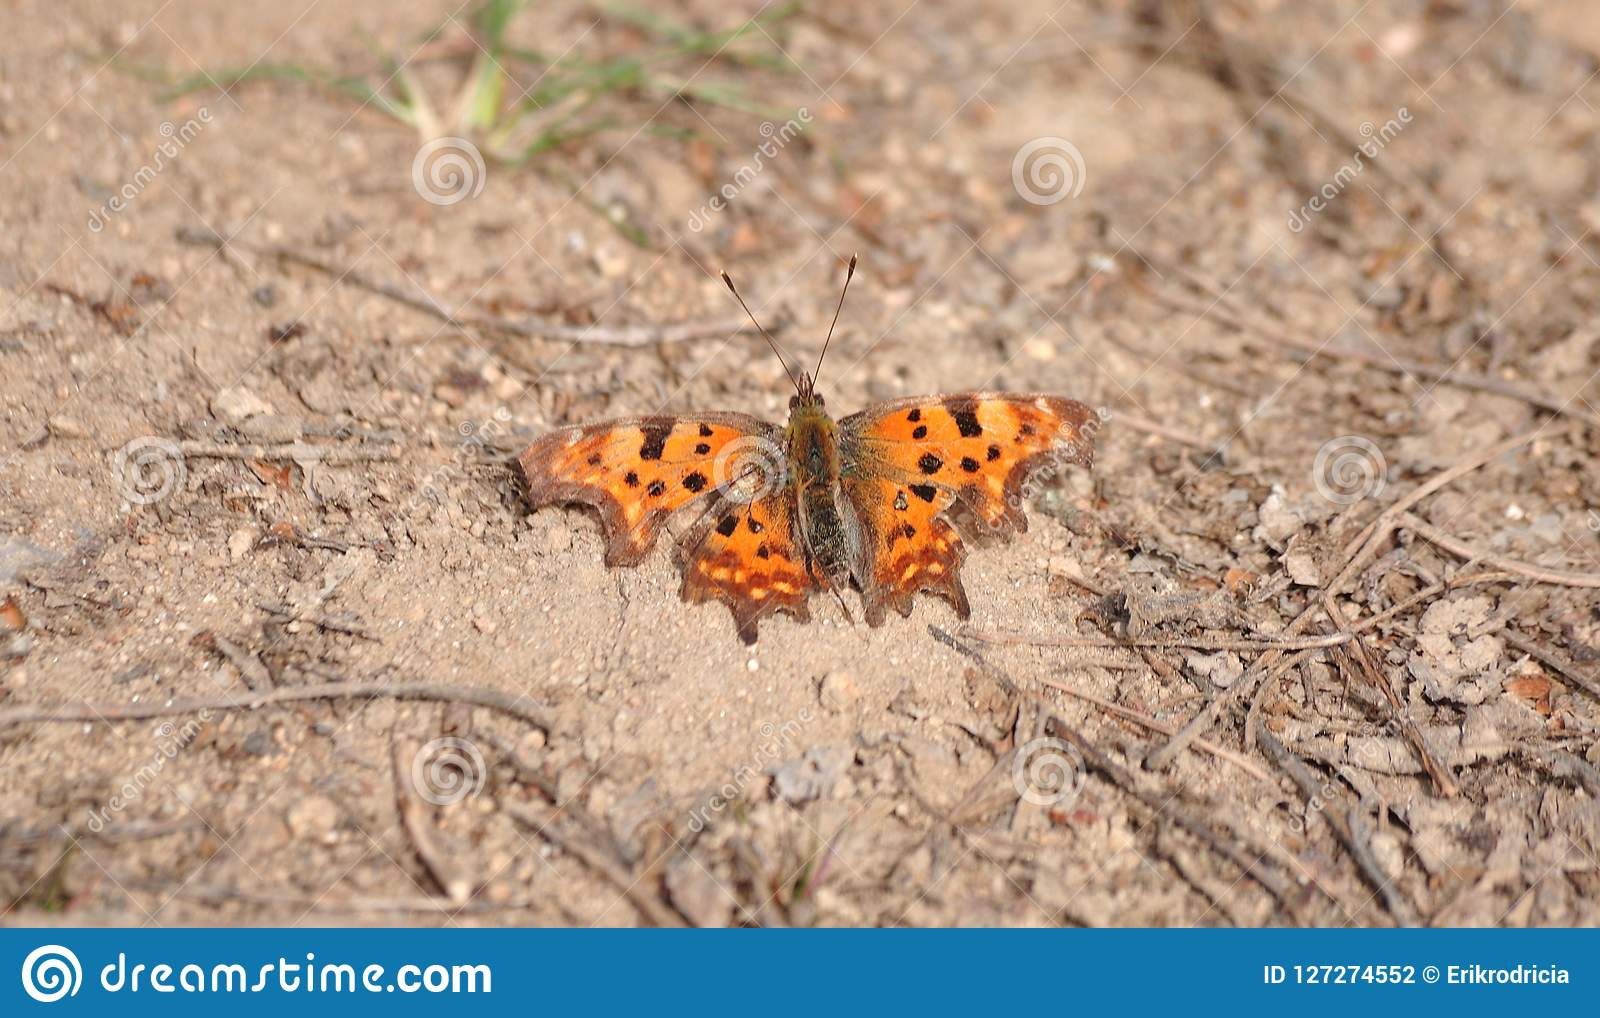 Butterfly Polygonia c-album warms the body